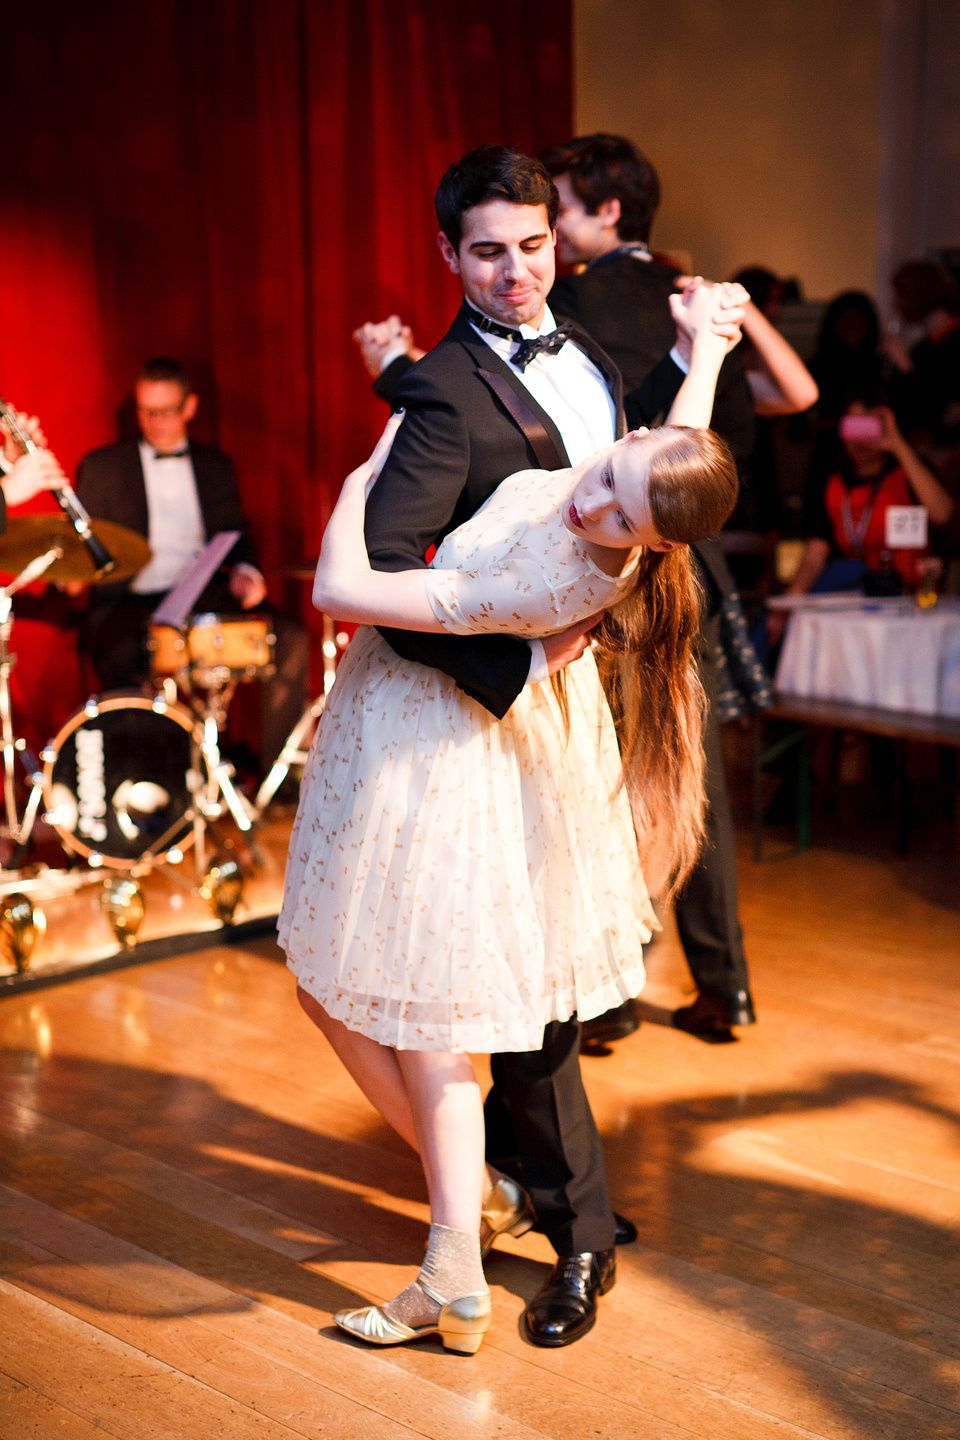 Find This Pin And More On Ballroom Dancing London